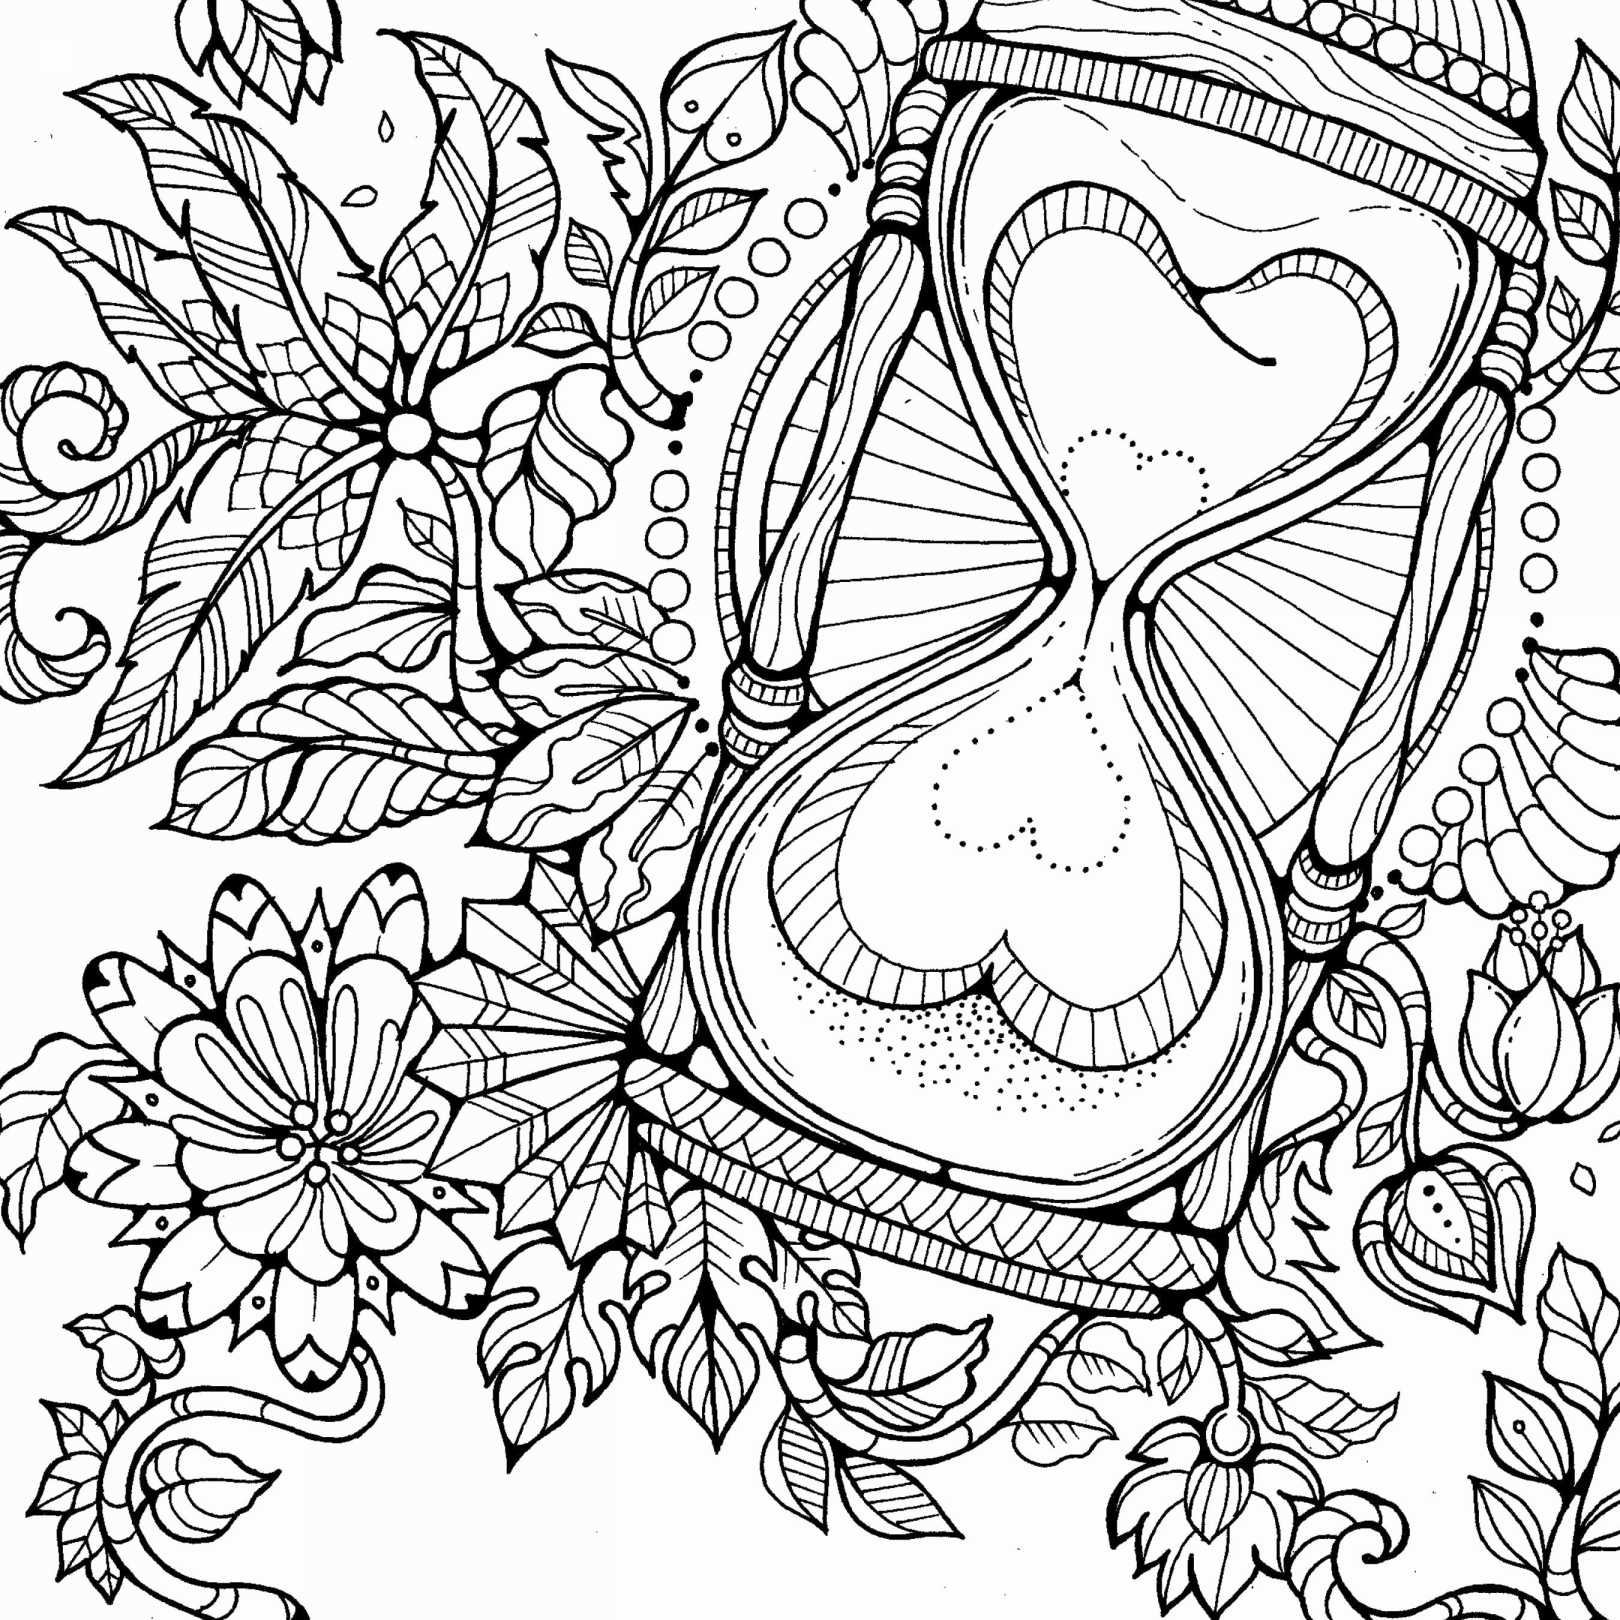 Nativity Scene Coloring Pages  to Print 6m - Save it to your computer